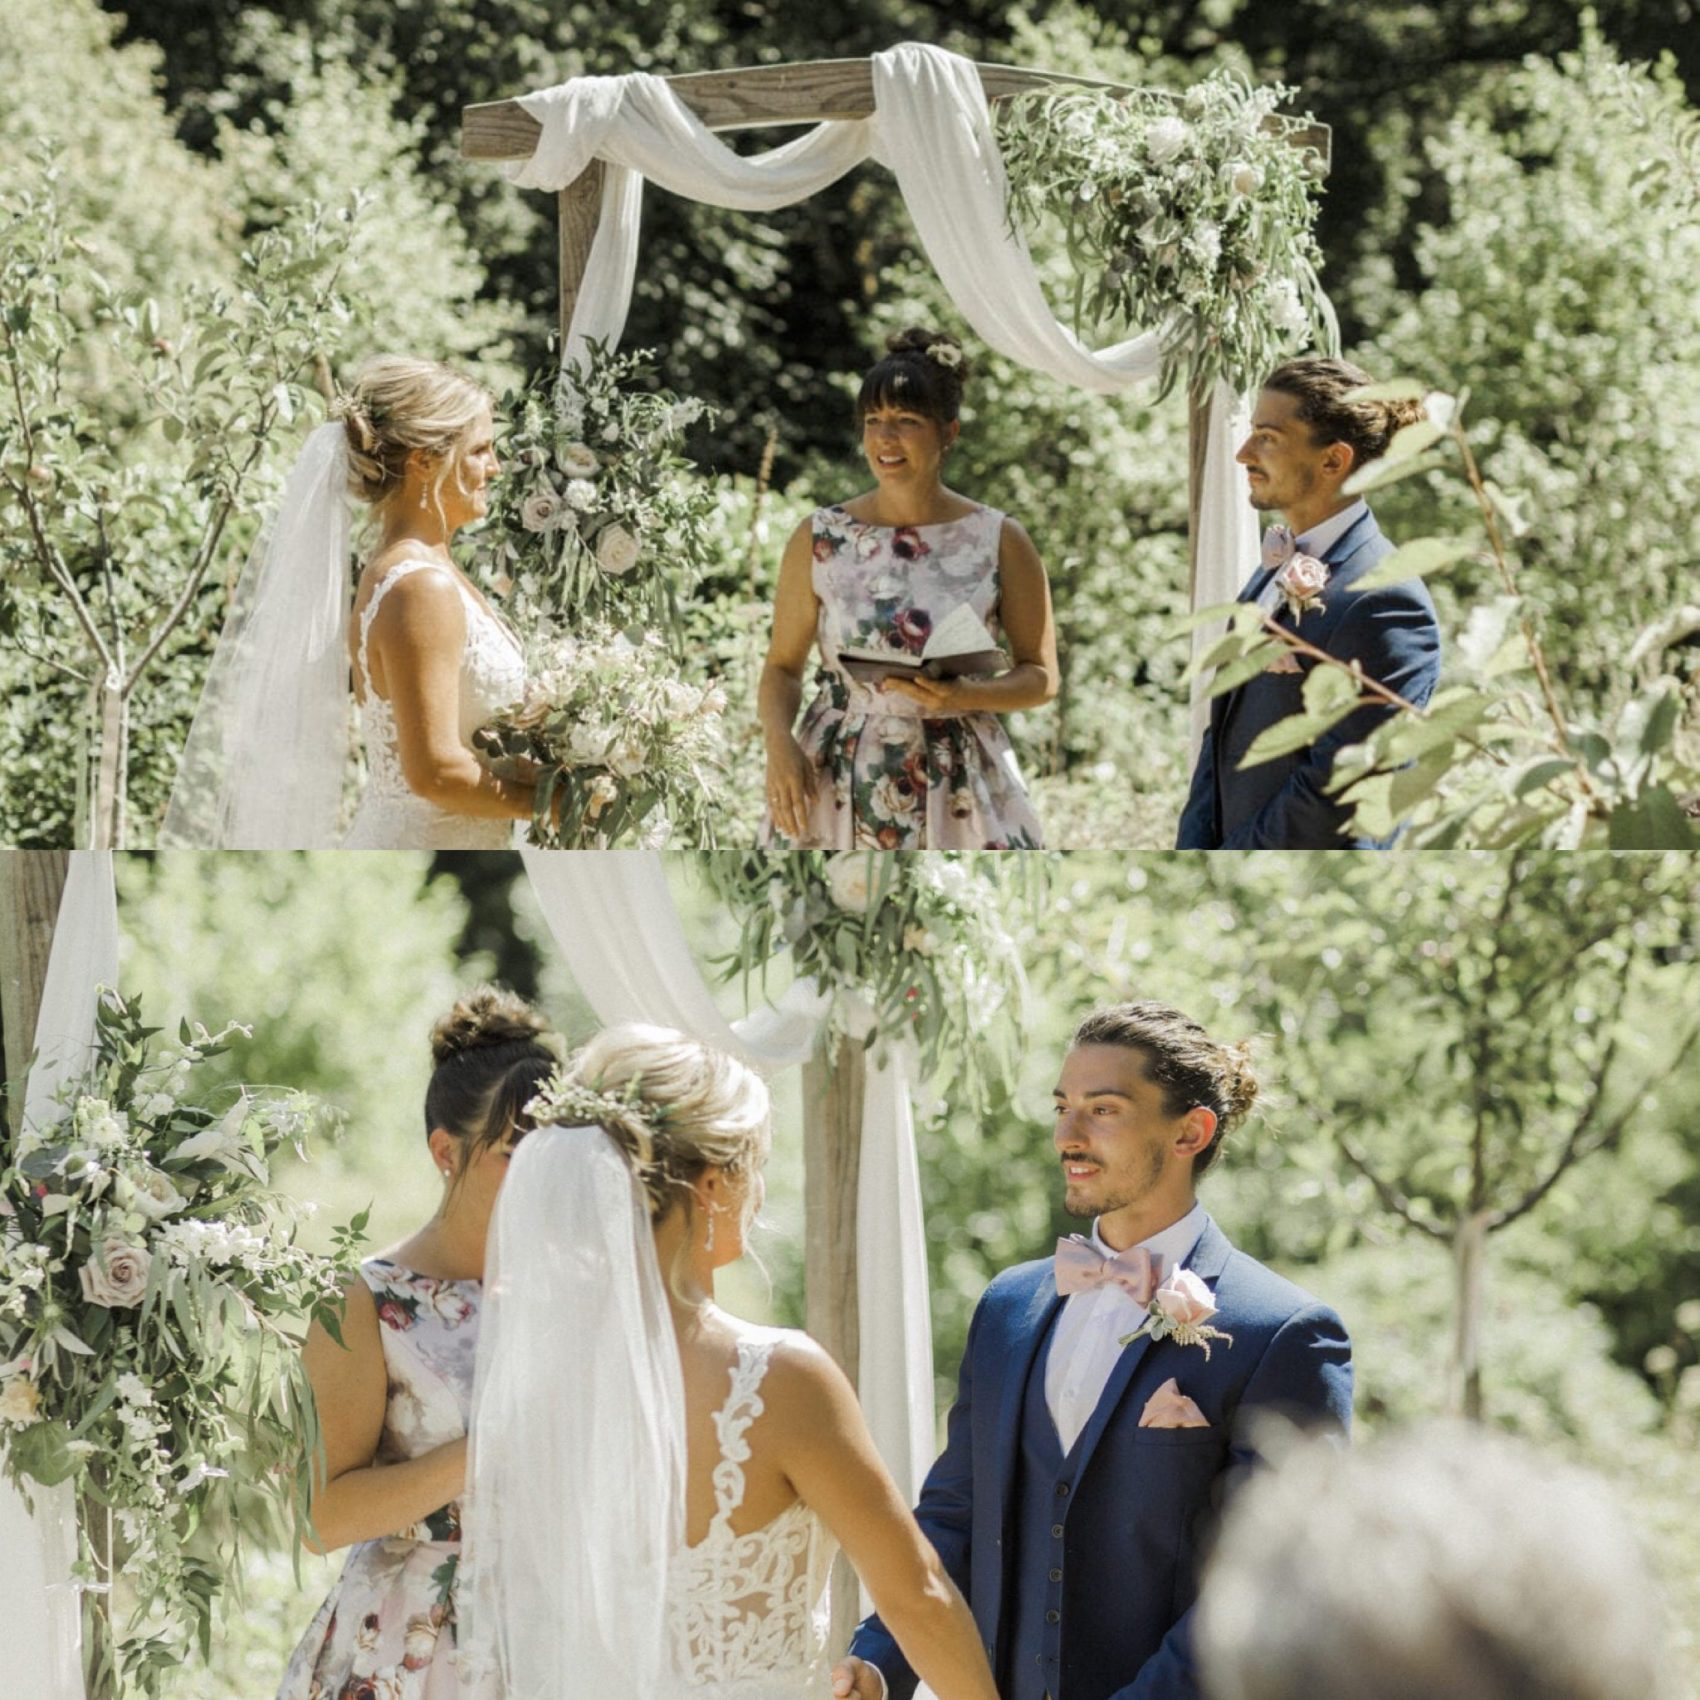 humanist ceremony, non legal, orchard, summer, ever after, lower grenofen, arch, white material, bride & groom